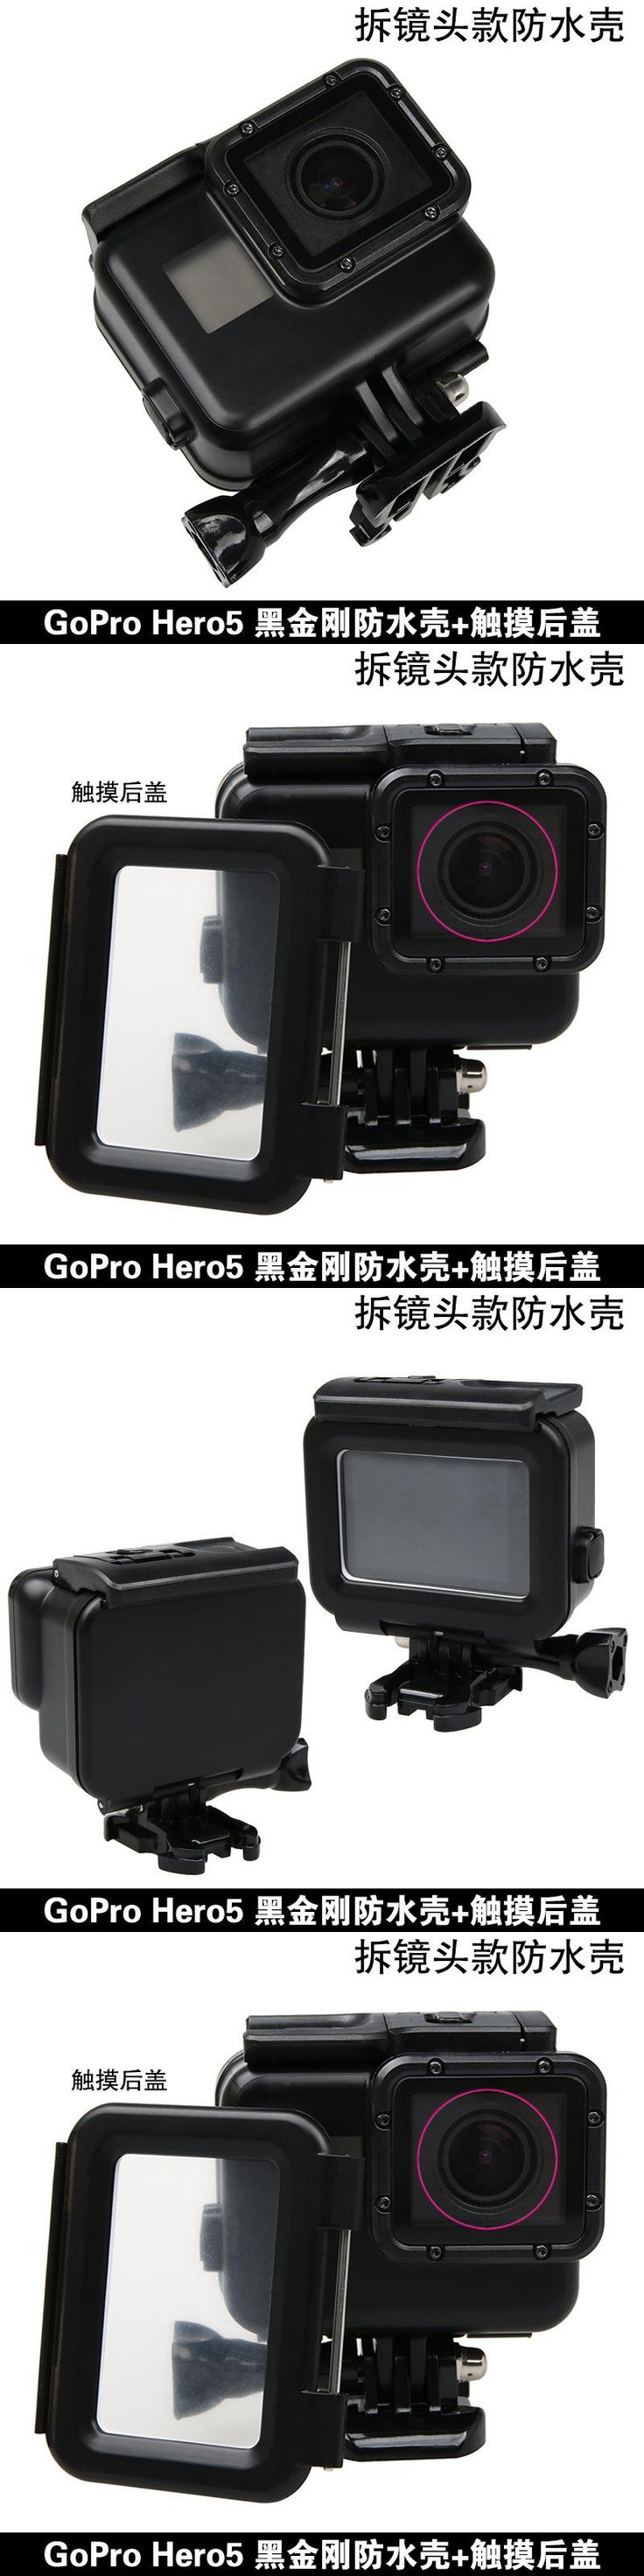 2017 New Black King Kong Sports Camera Accessories  Waterproof Shell Remove The Lens Section+Rear Touchpad FOR Gopro Hero5